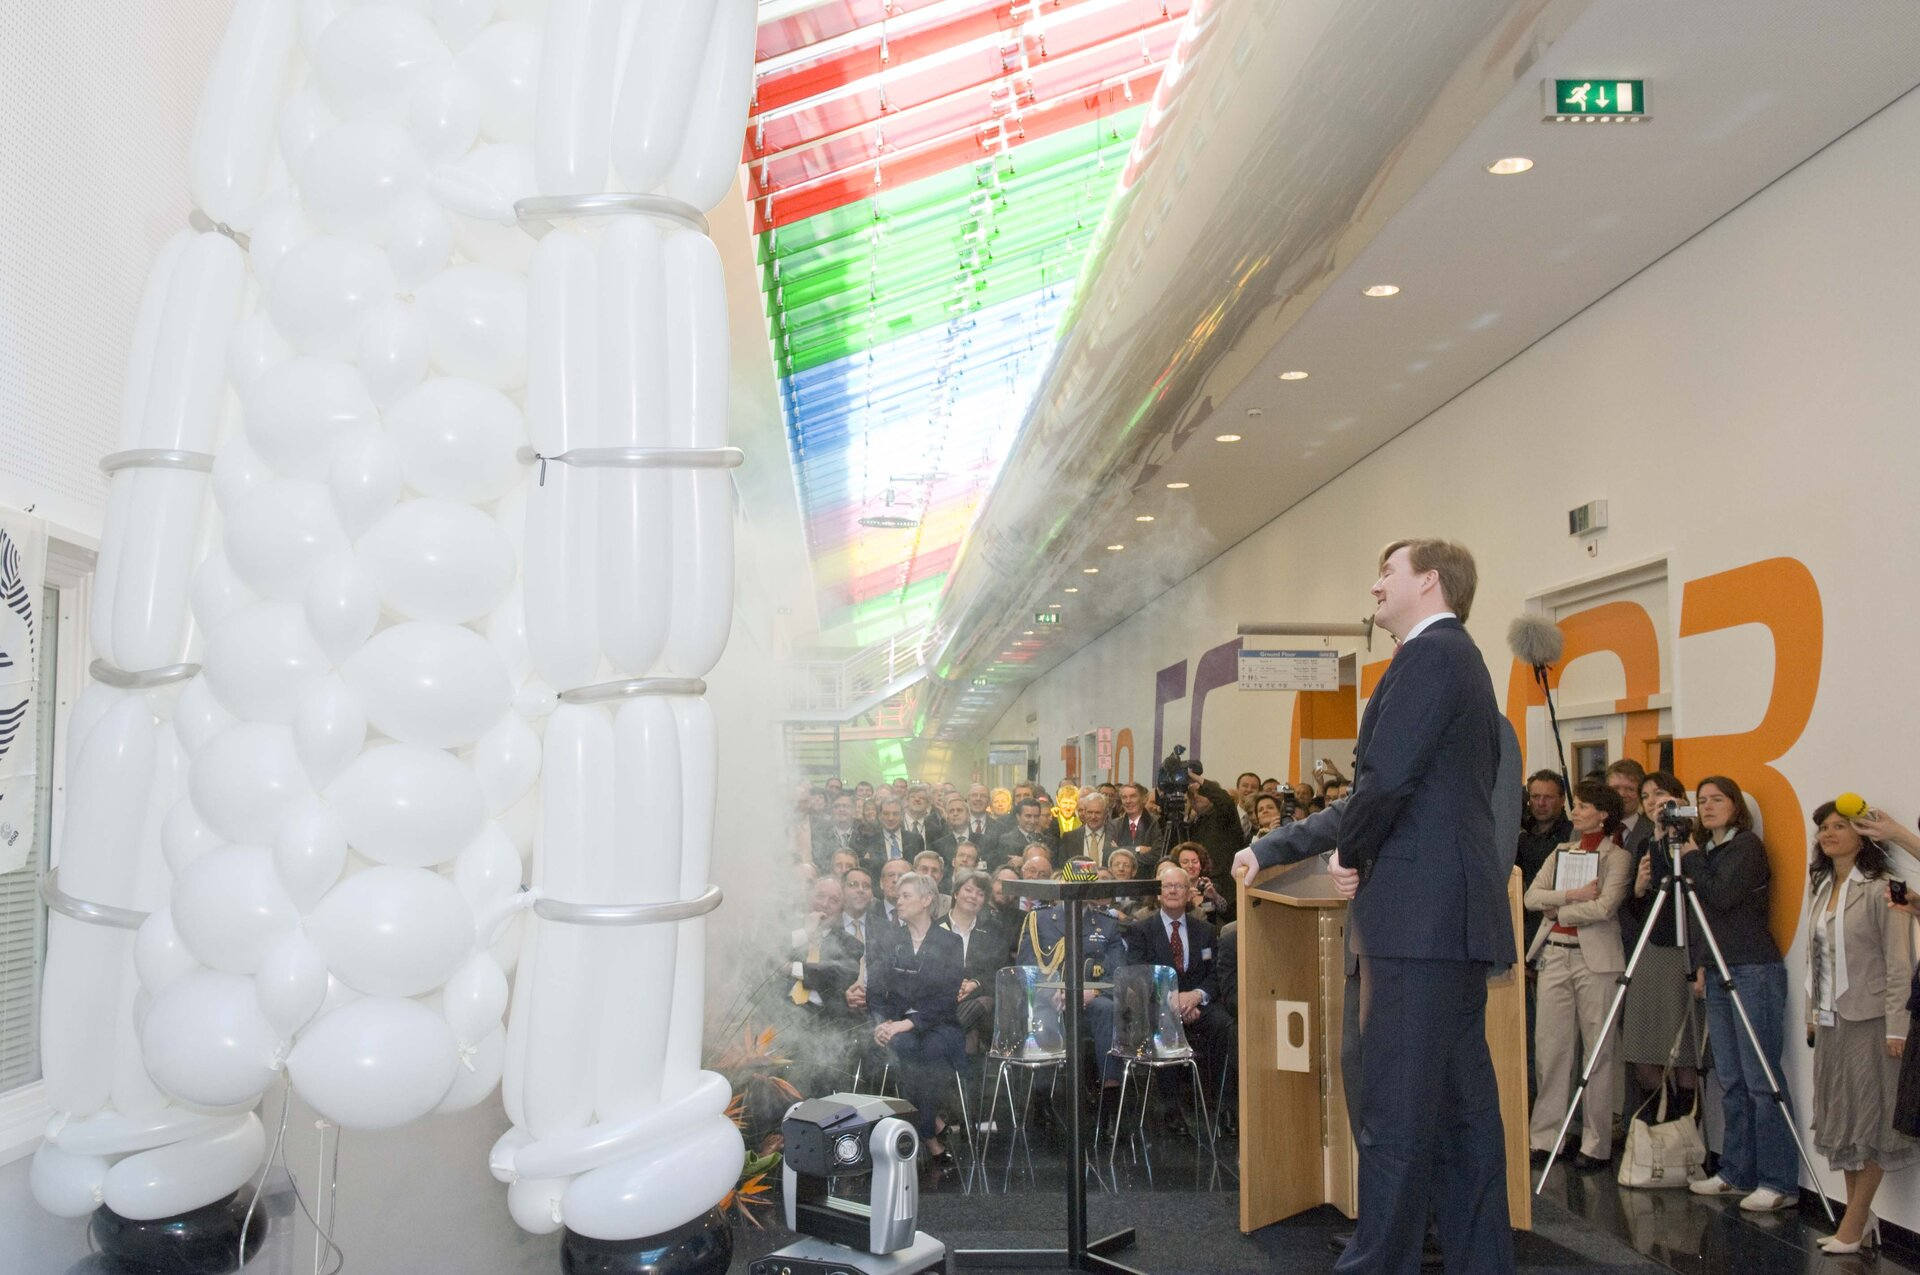 Prince Willem-Alexander opens ESTEC's new lab corridor in 2008